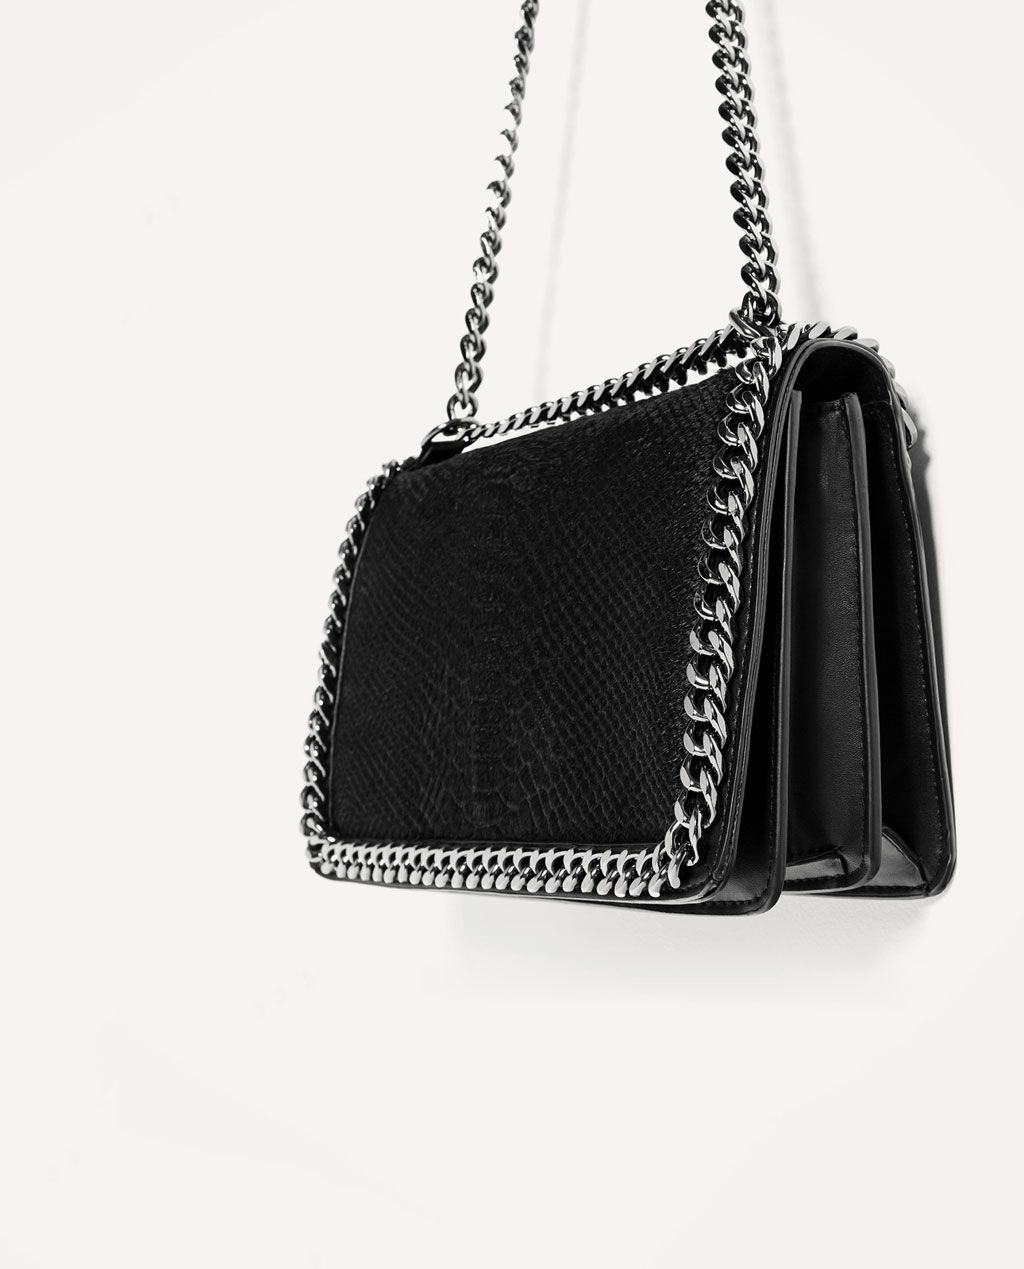 0567f4db1e CROSSBODY BAG WITH EMBOSSED CHAIN-View all-BAGS-WOMAN | ZARA United ...